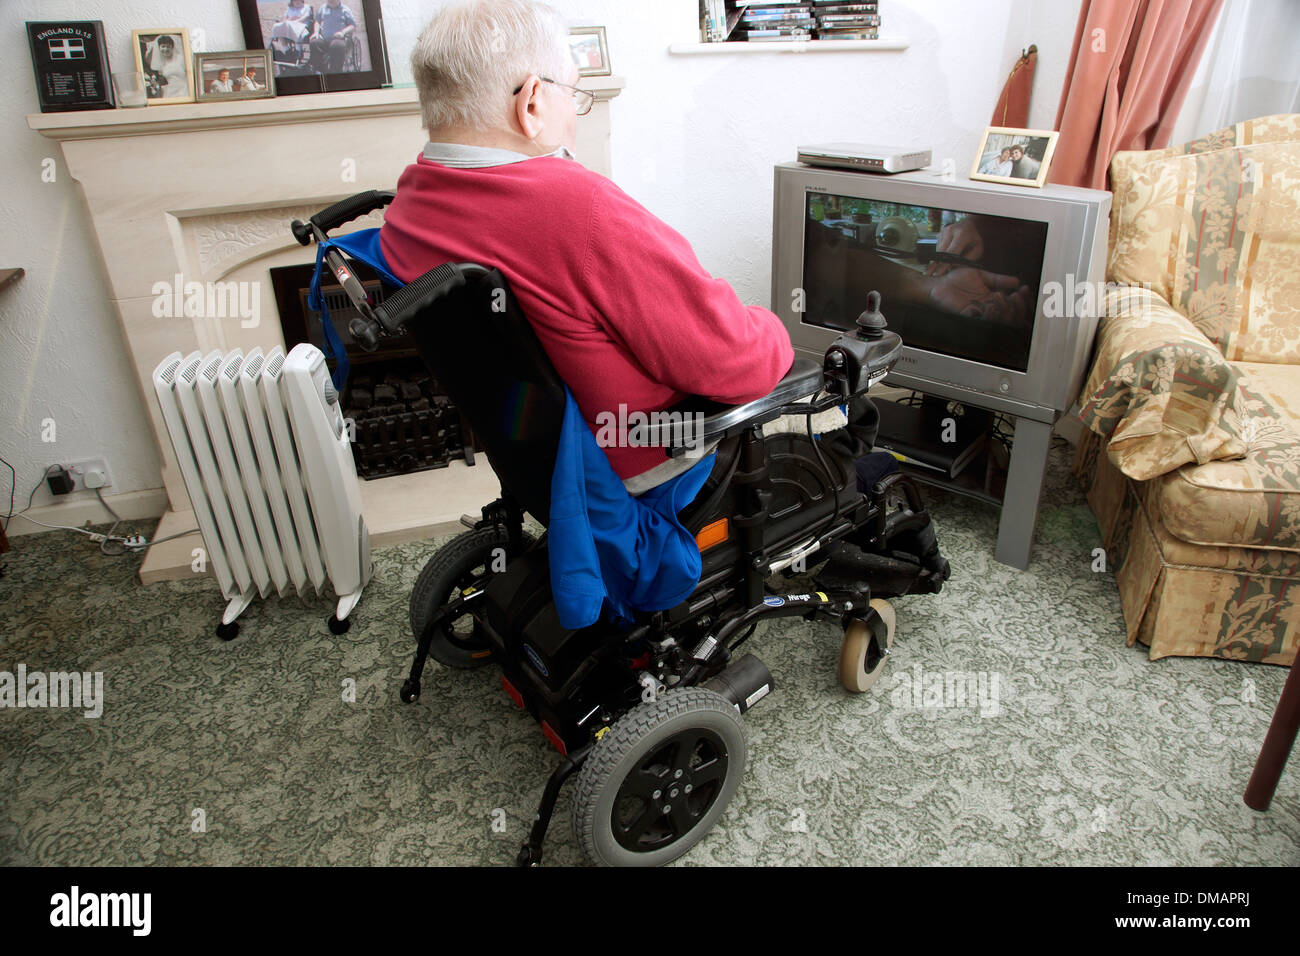 Disabled elderly man in a wheelchair watching the television - Stock Image